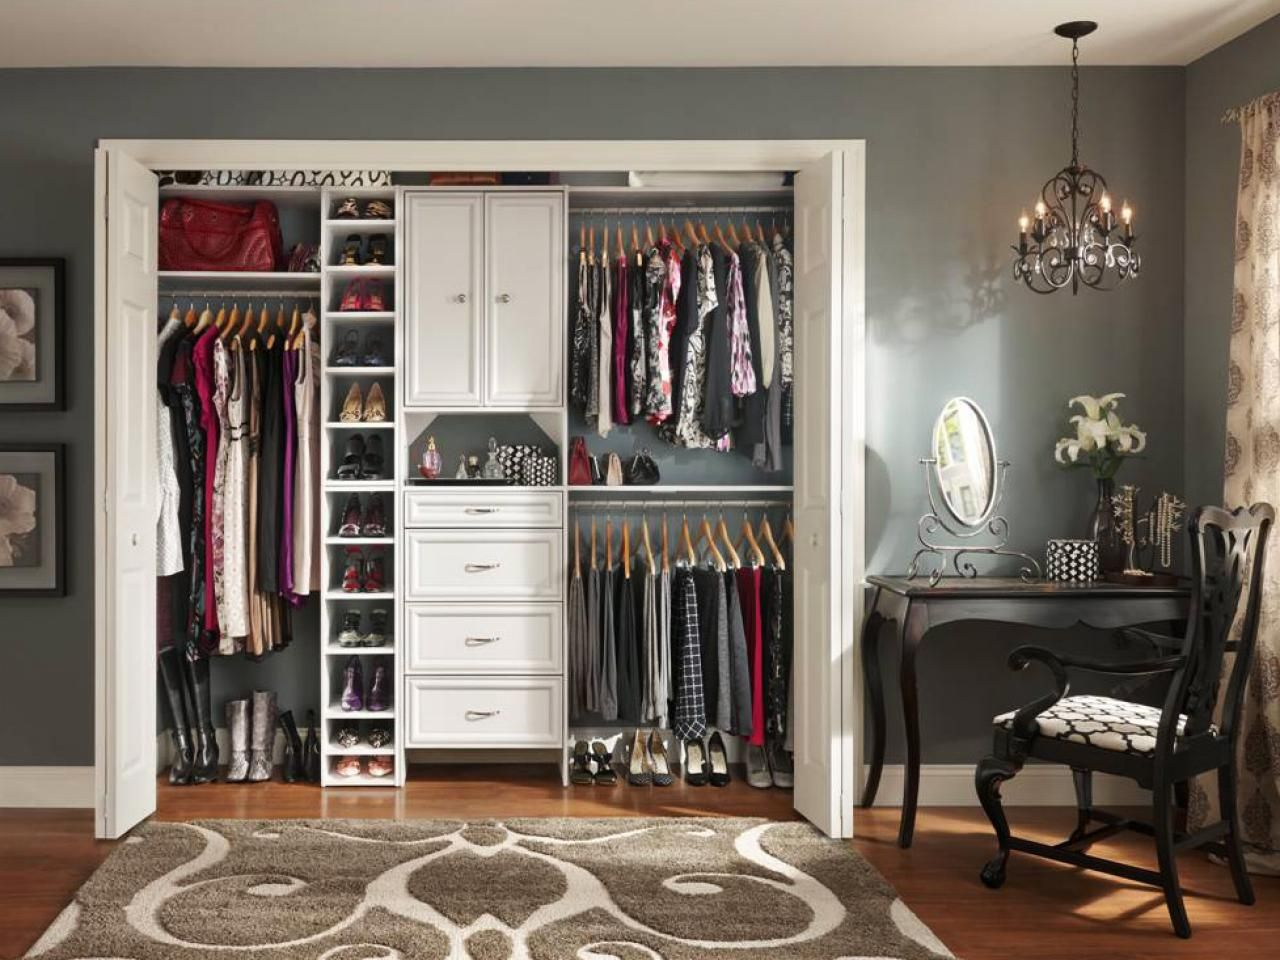 Small Closet Organization Ideas Pictures Options Tips Closet Remodel Closet Designs Ikea Closet Organizer